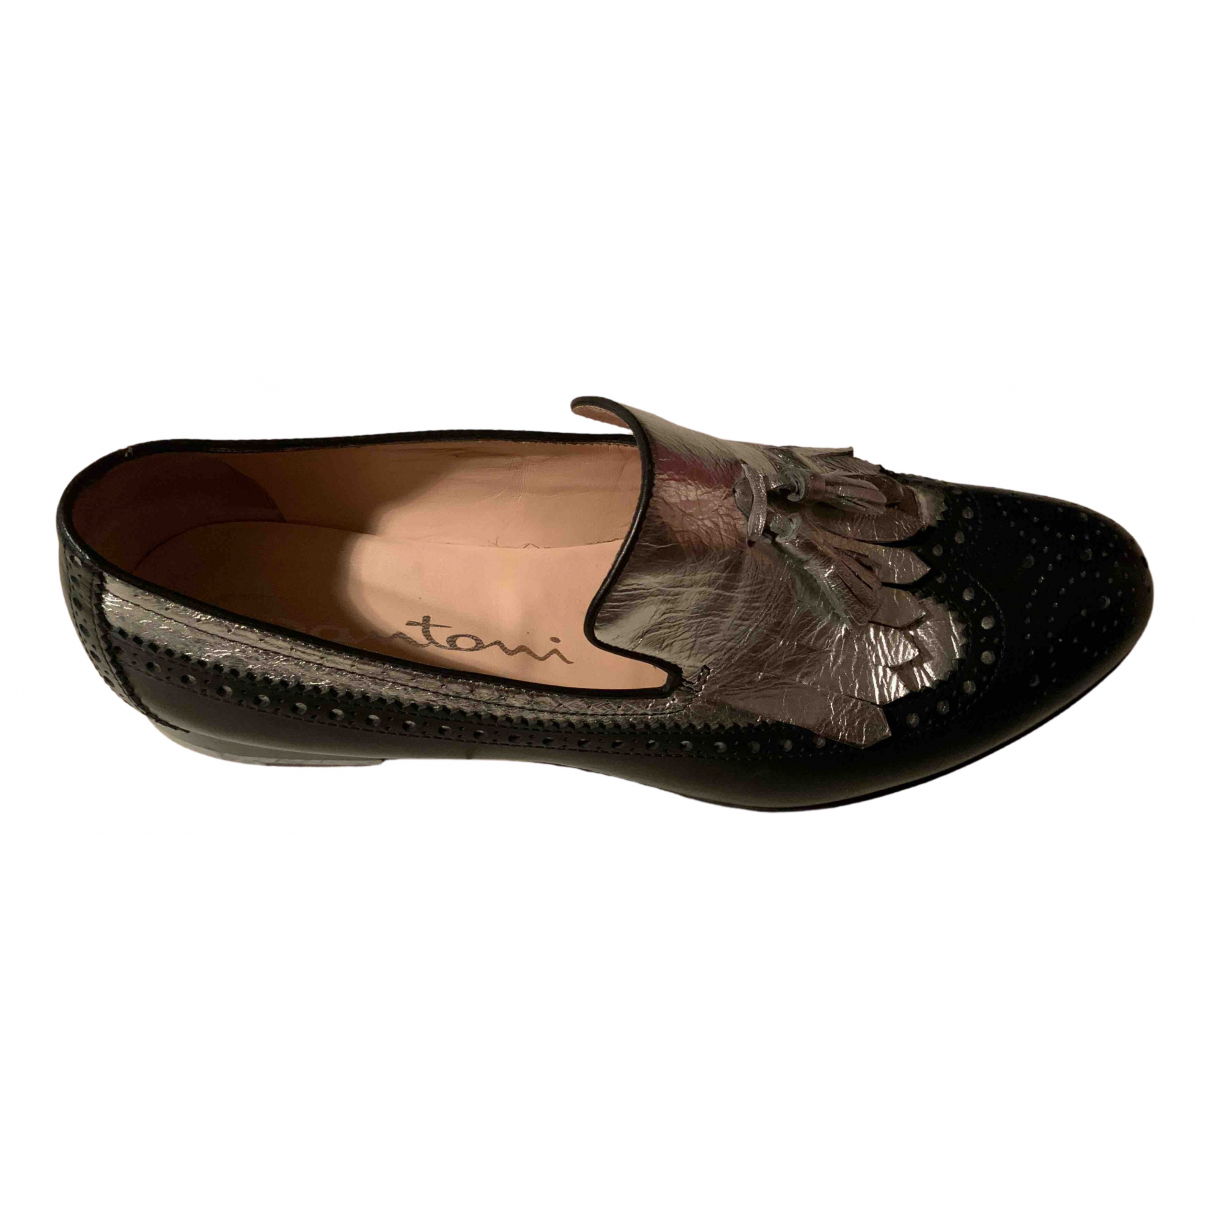 Santoni N Multicolour Leather Flats for Women 39 EU